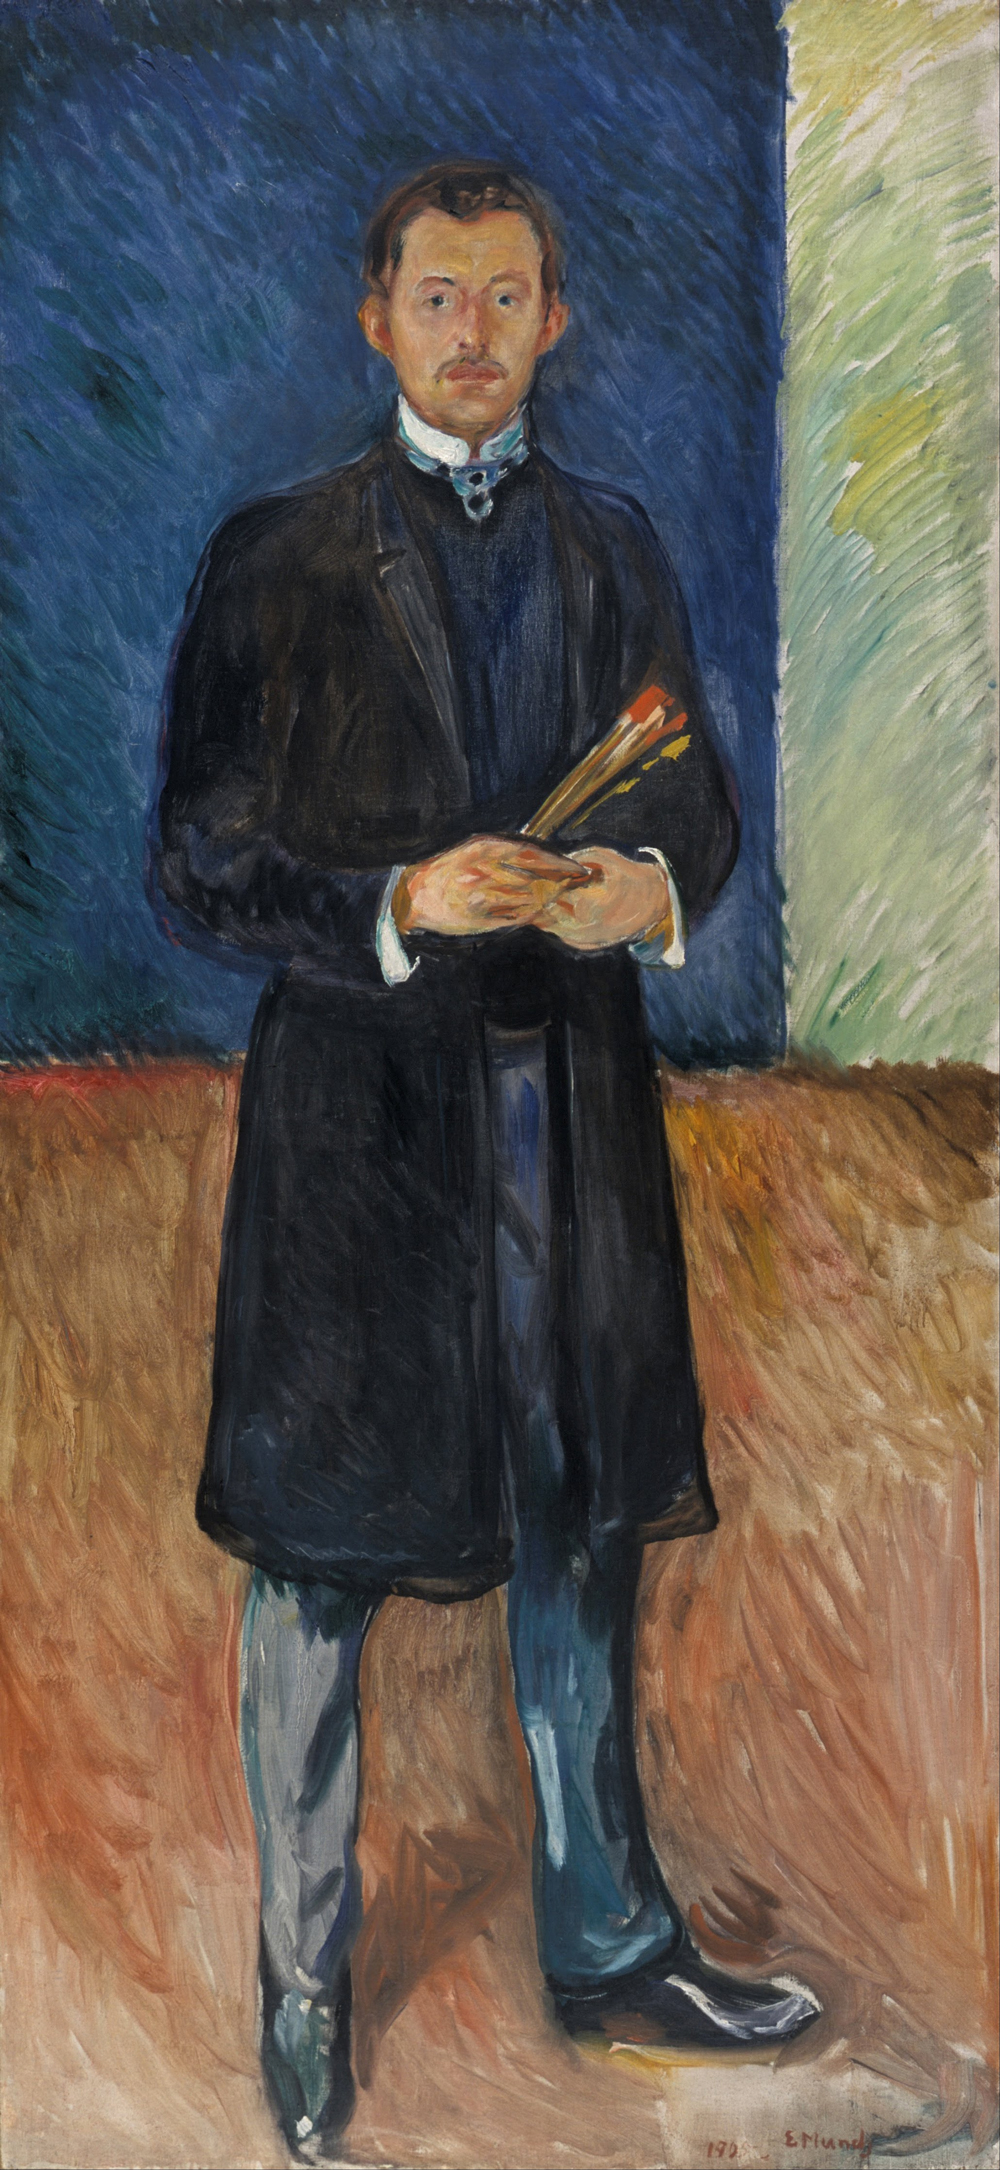 Edvard_Munch_-_Self-Portrait_with_Brushes